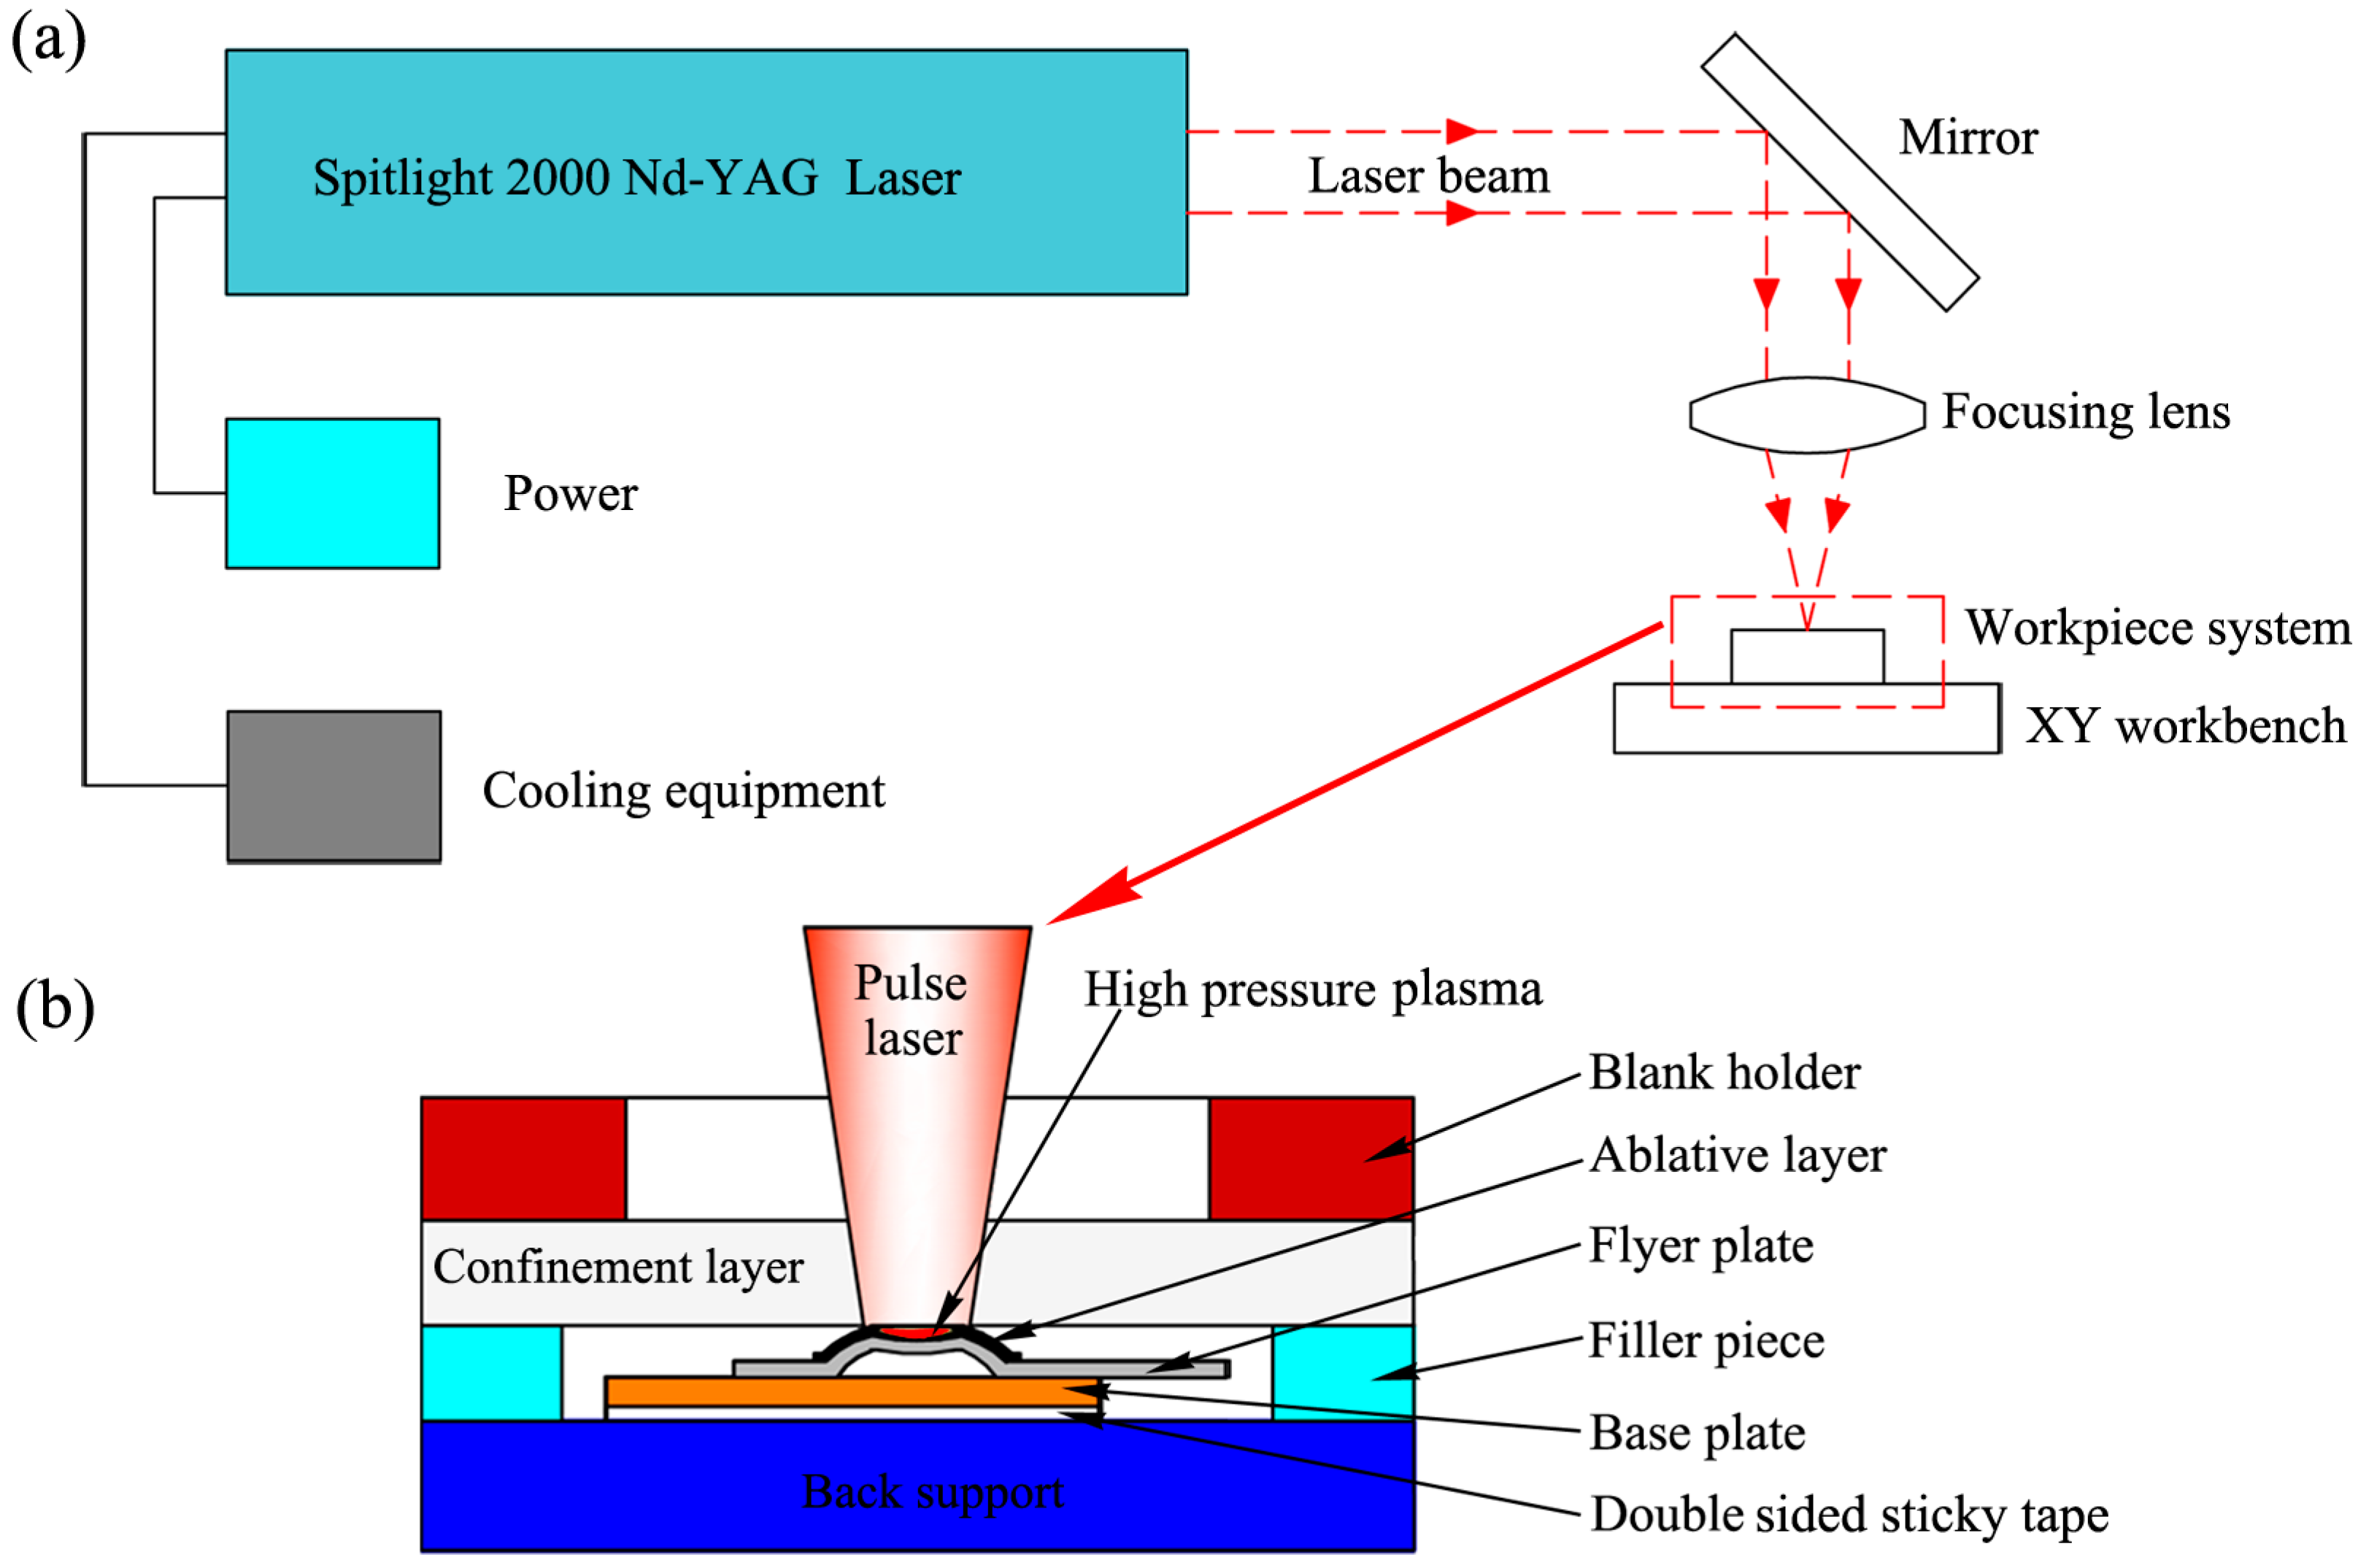 Spot Welding Cooling Diagram Circuit Wiring And Hub Mig Welder Gun Metals Free Full Text Investigation On A Novel Laser Impact Rh Mdpi Com Lincoln